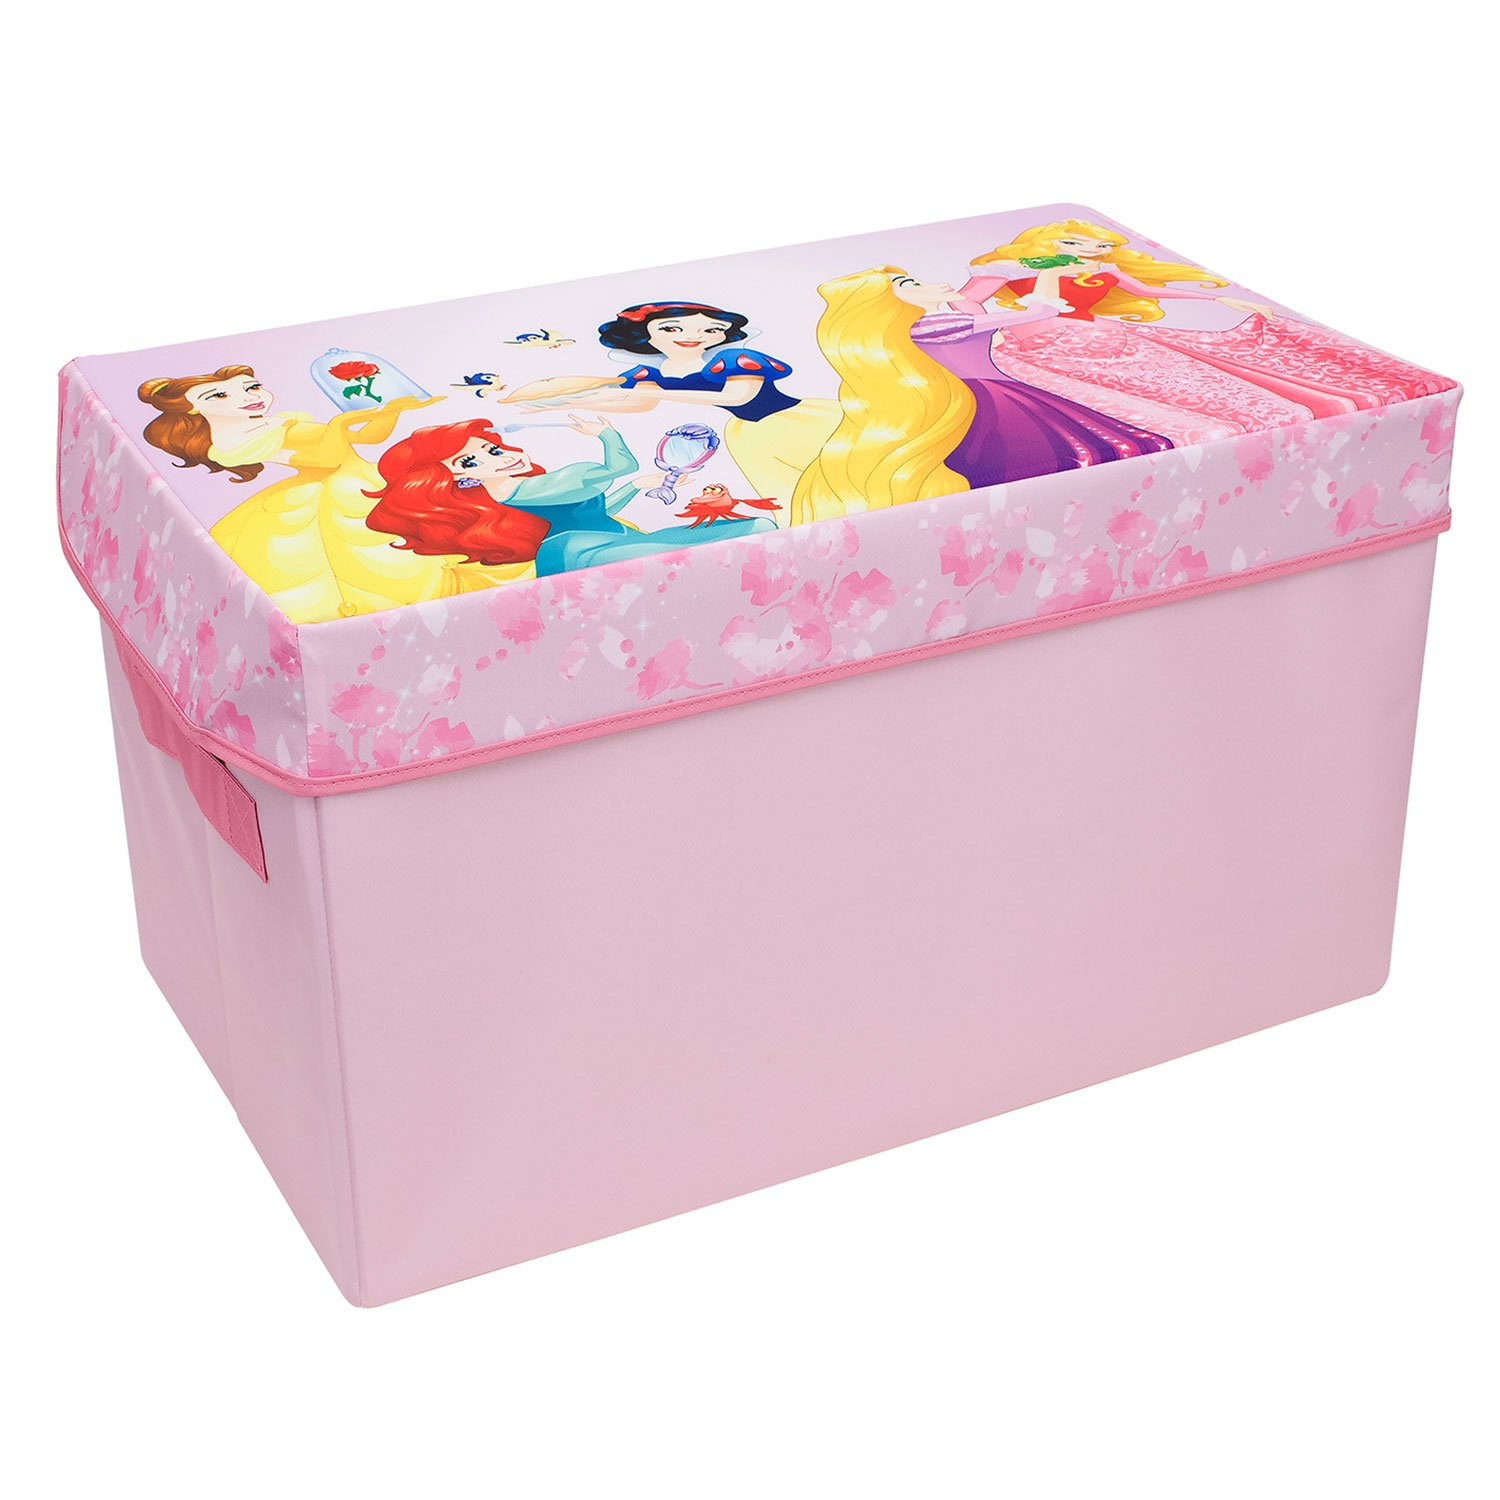 Forever Princess Collapsible KidsToy Storage Chest by Disney - Flip-Top Toy Organizer Bin for Closets, Kids Bedroom, Boys & Girls Toys - Foldable Toy Basket Organizer with Strong Handles & Design